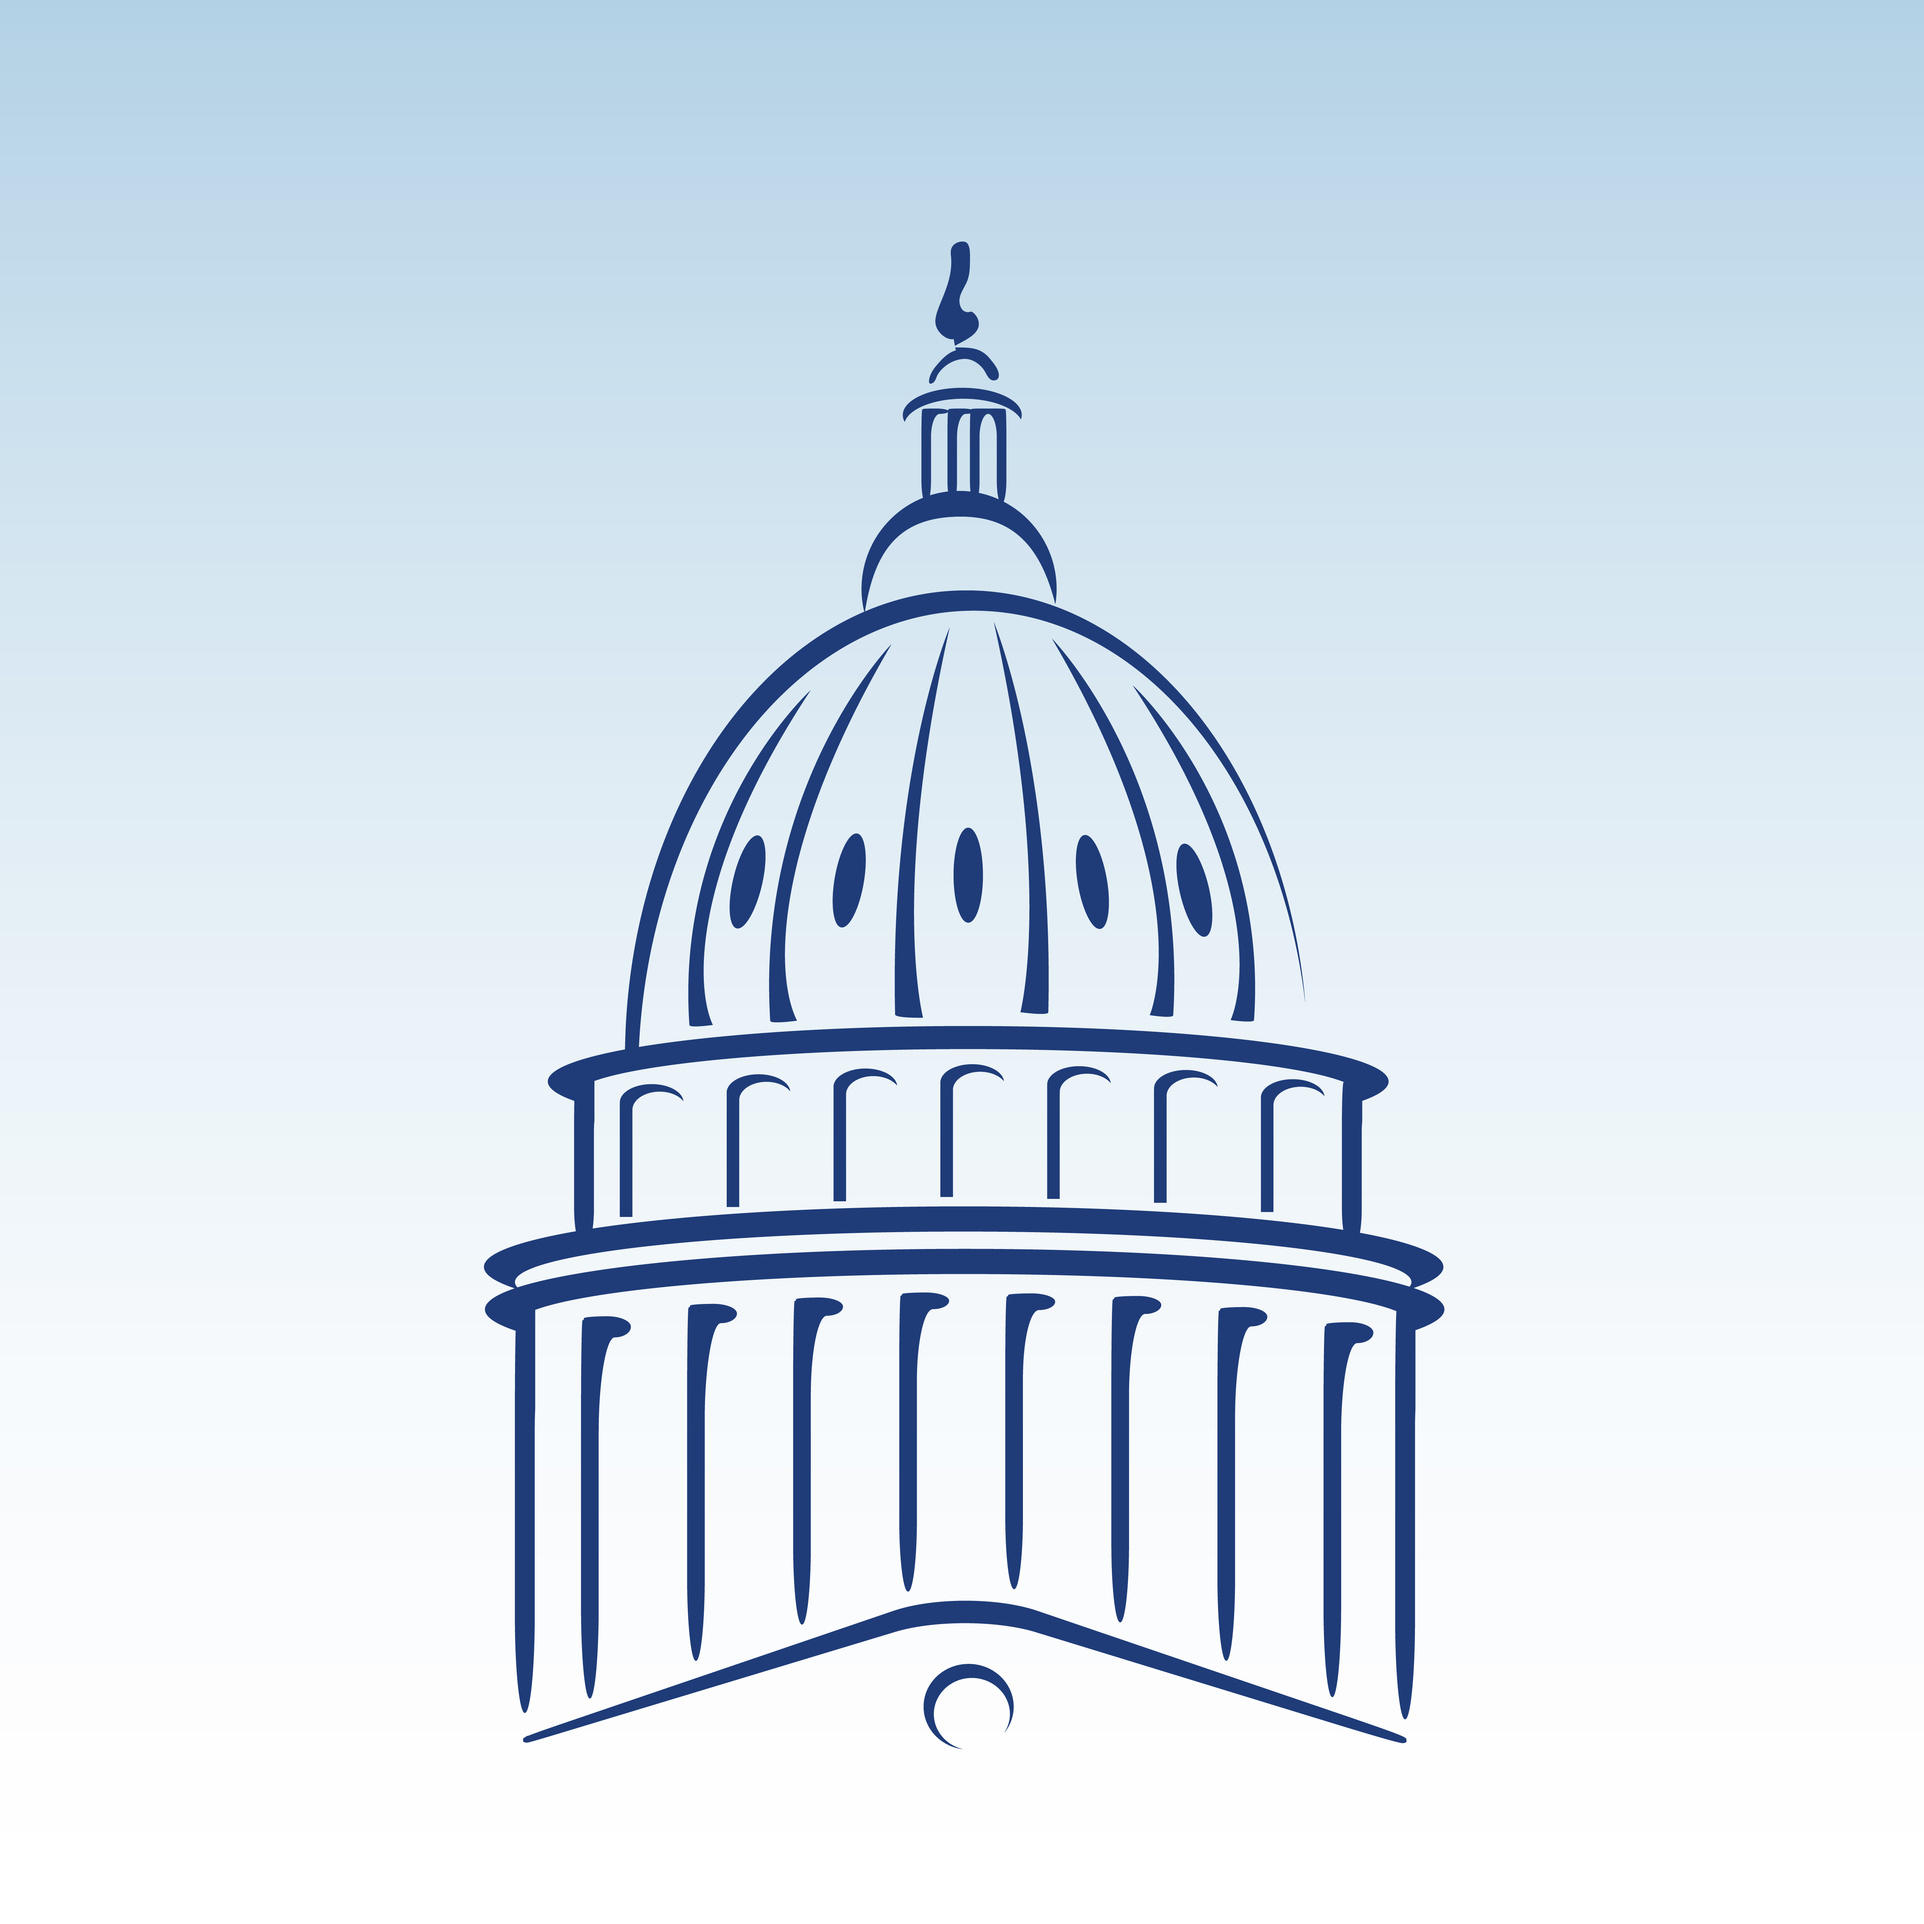 Capitol building clipart png image library download Capitol hill clip art - ClipartFest image library download